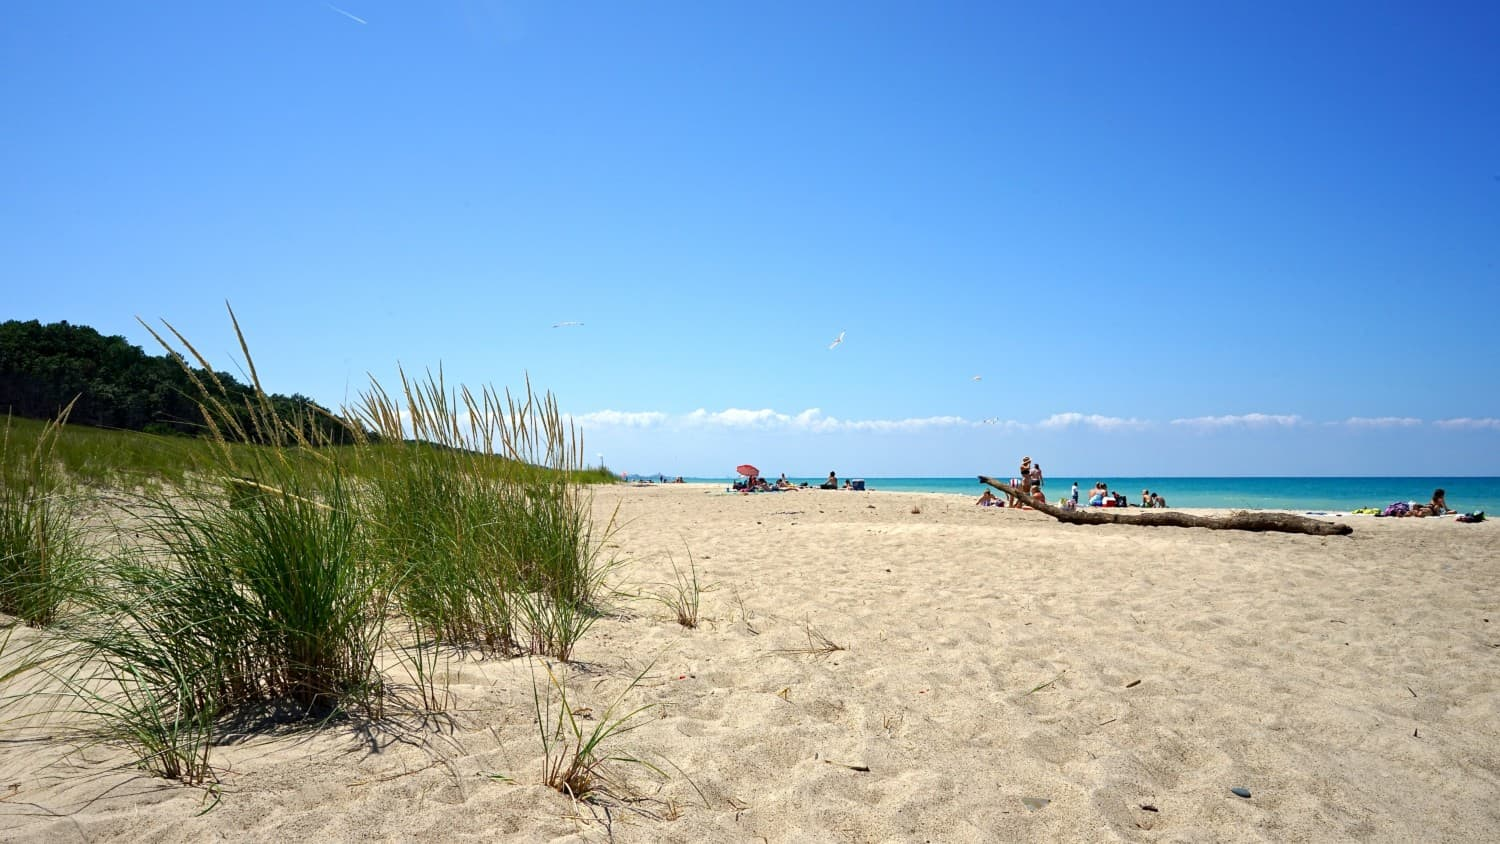 Indiana's Top Pet Friendly Attraction: Indiana Dunes Lakeshore | GoPetFriendly.com